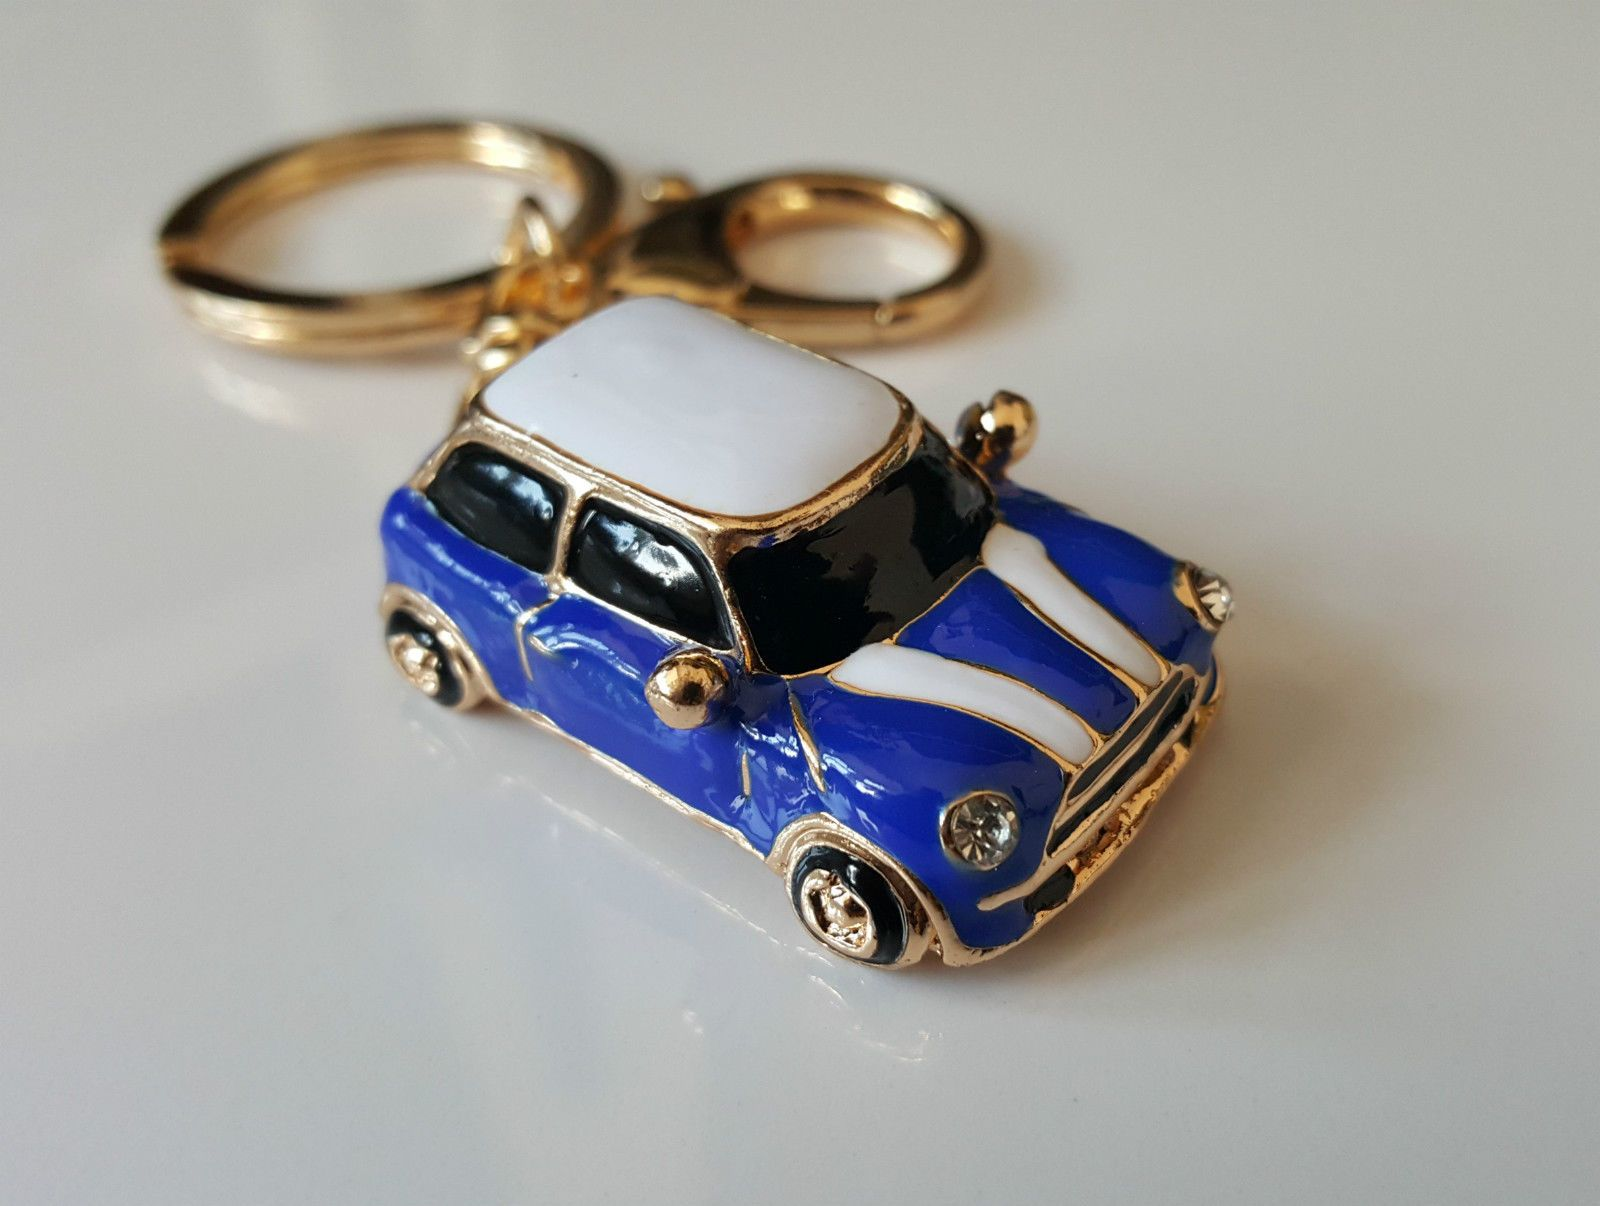 Mini #cooper #style car keyring gift blue/red/black #rhinestone detail,  View more on the LINK: http://www.zeppy.io/product/gb/2/121573821471/